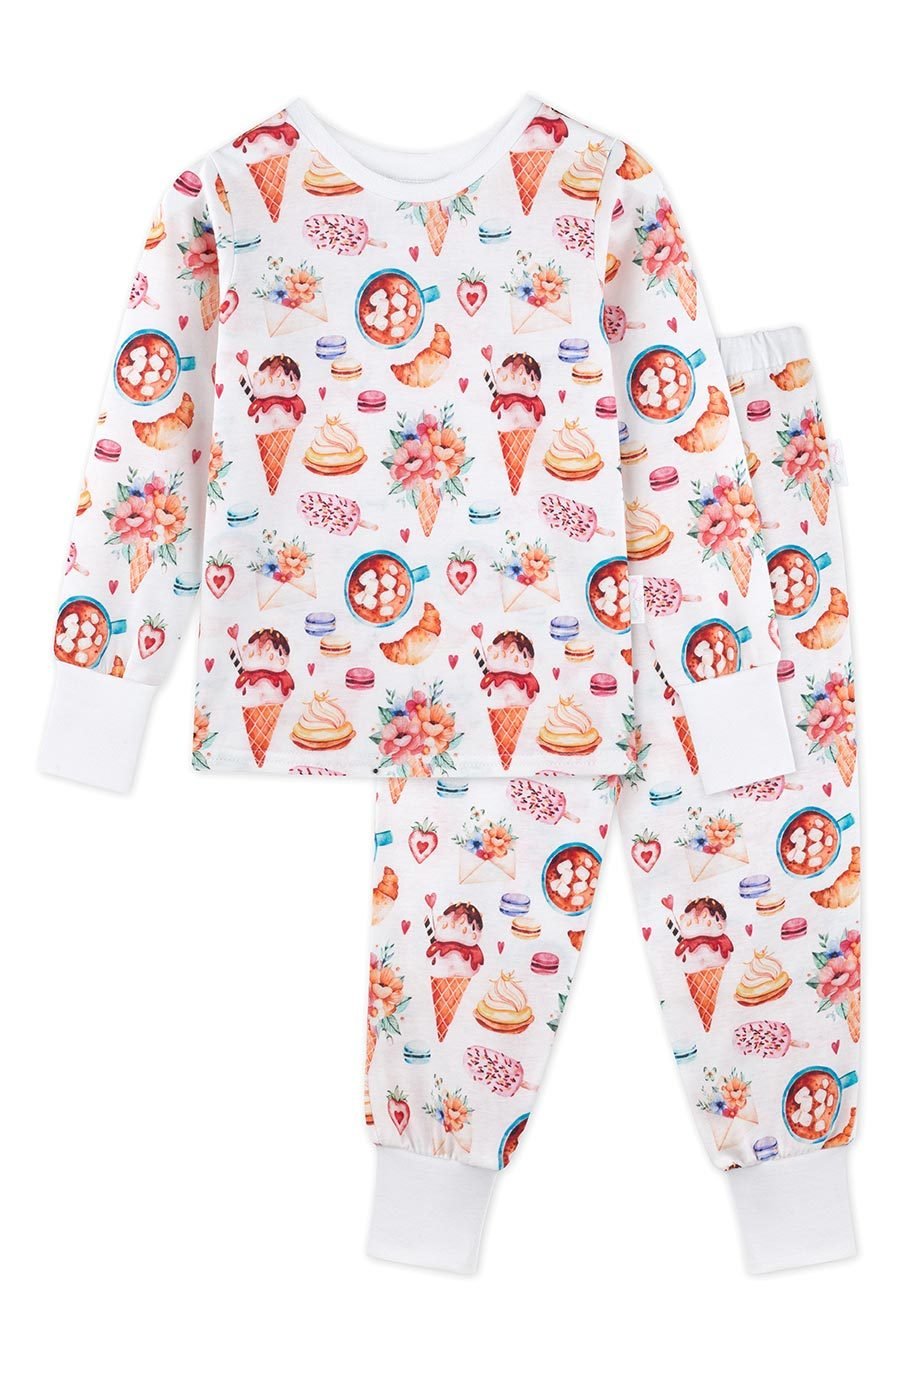 pyjamaset-kinderpyjama-kinderpyjamaset-candy-cotton-baumwolle